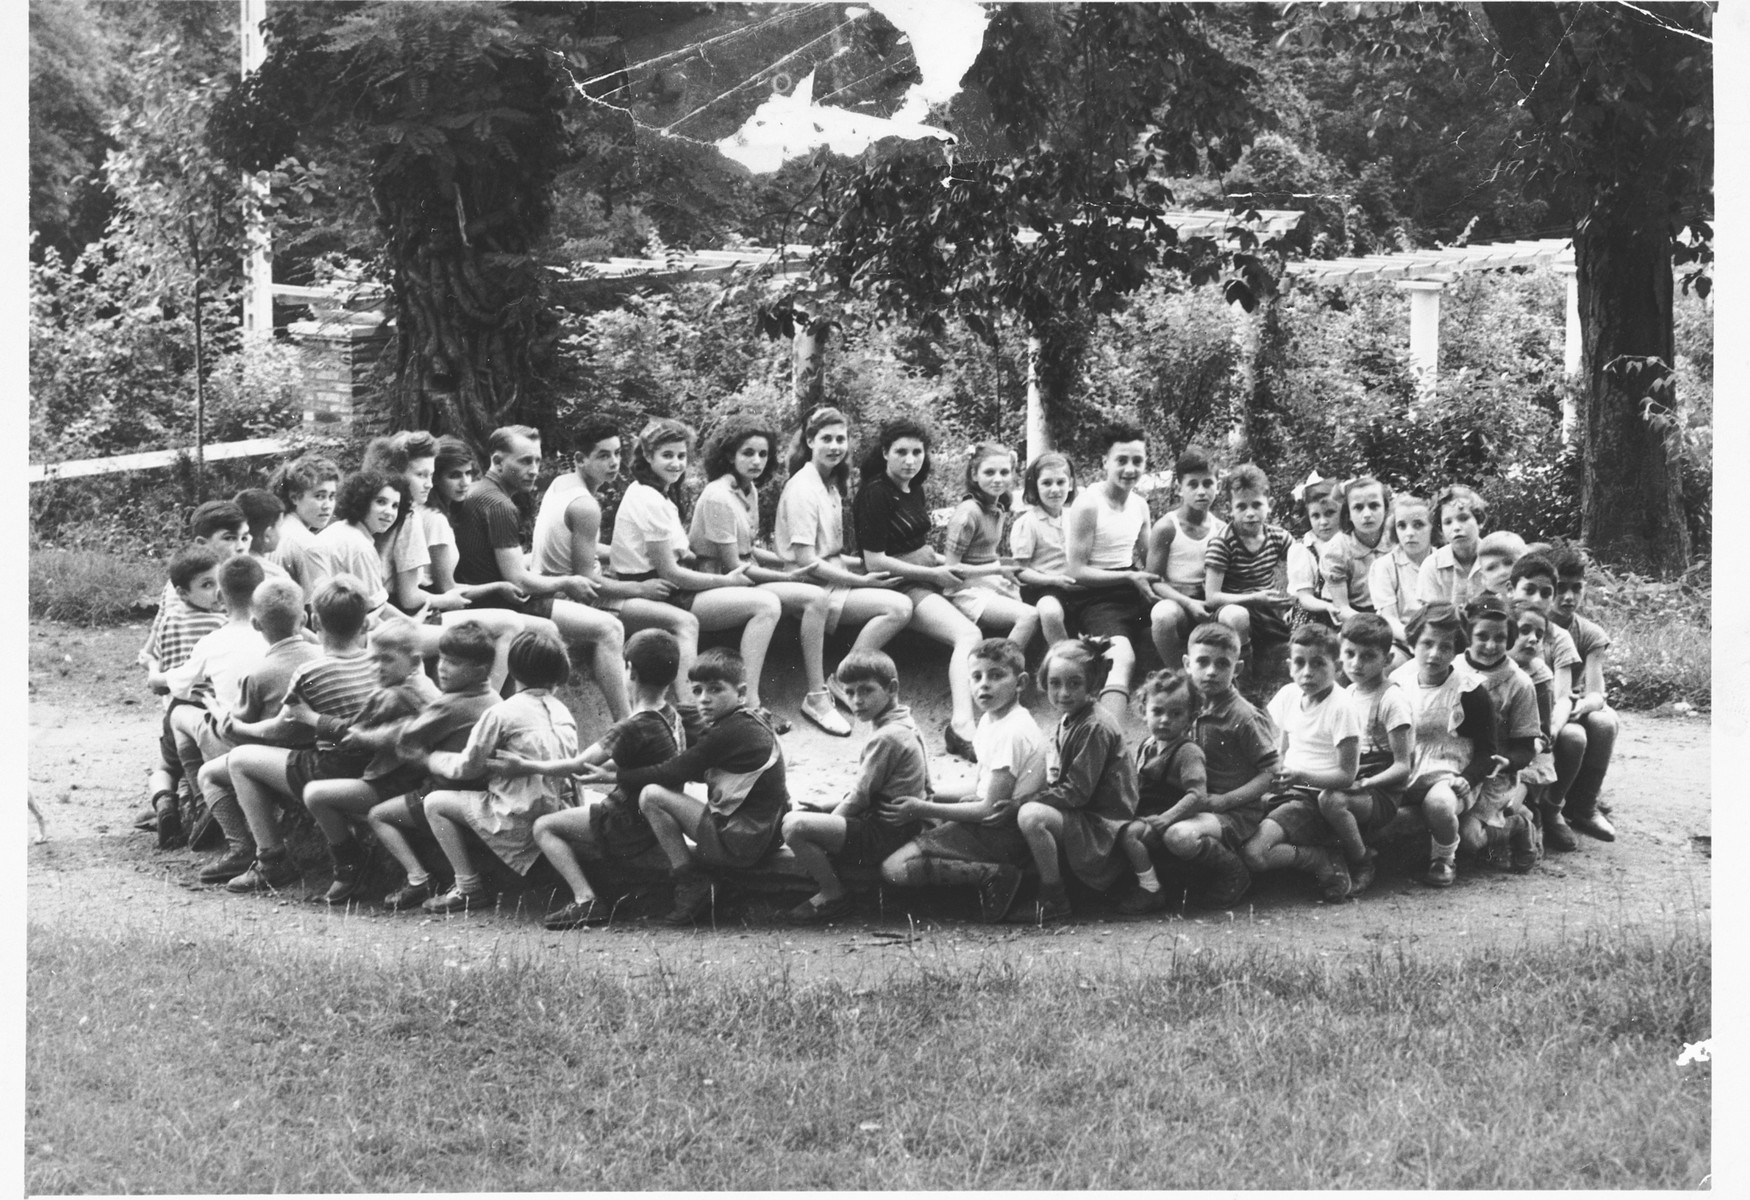 Staff and children pose in a large circle on the grounds of the Nahum Aronson children's home in Les Andelys, France.